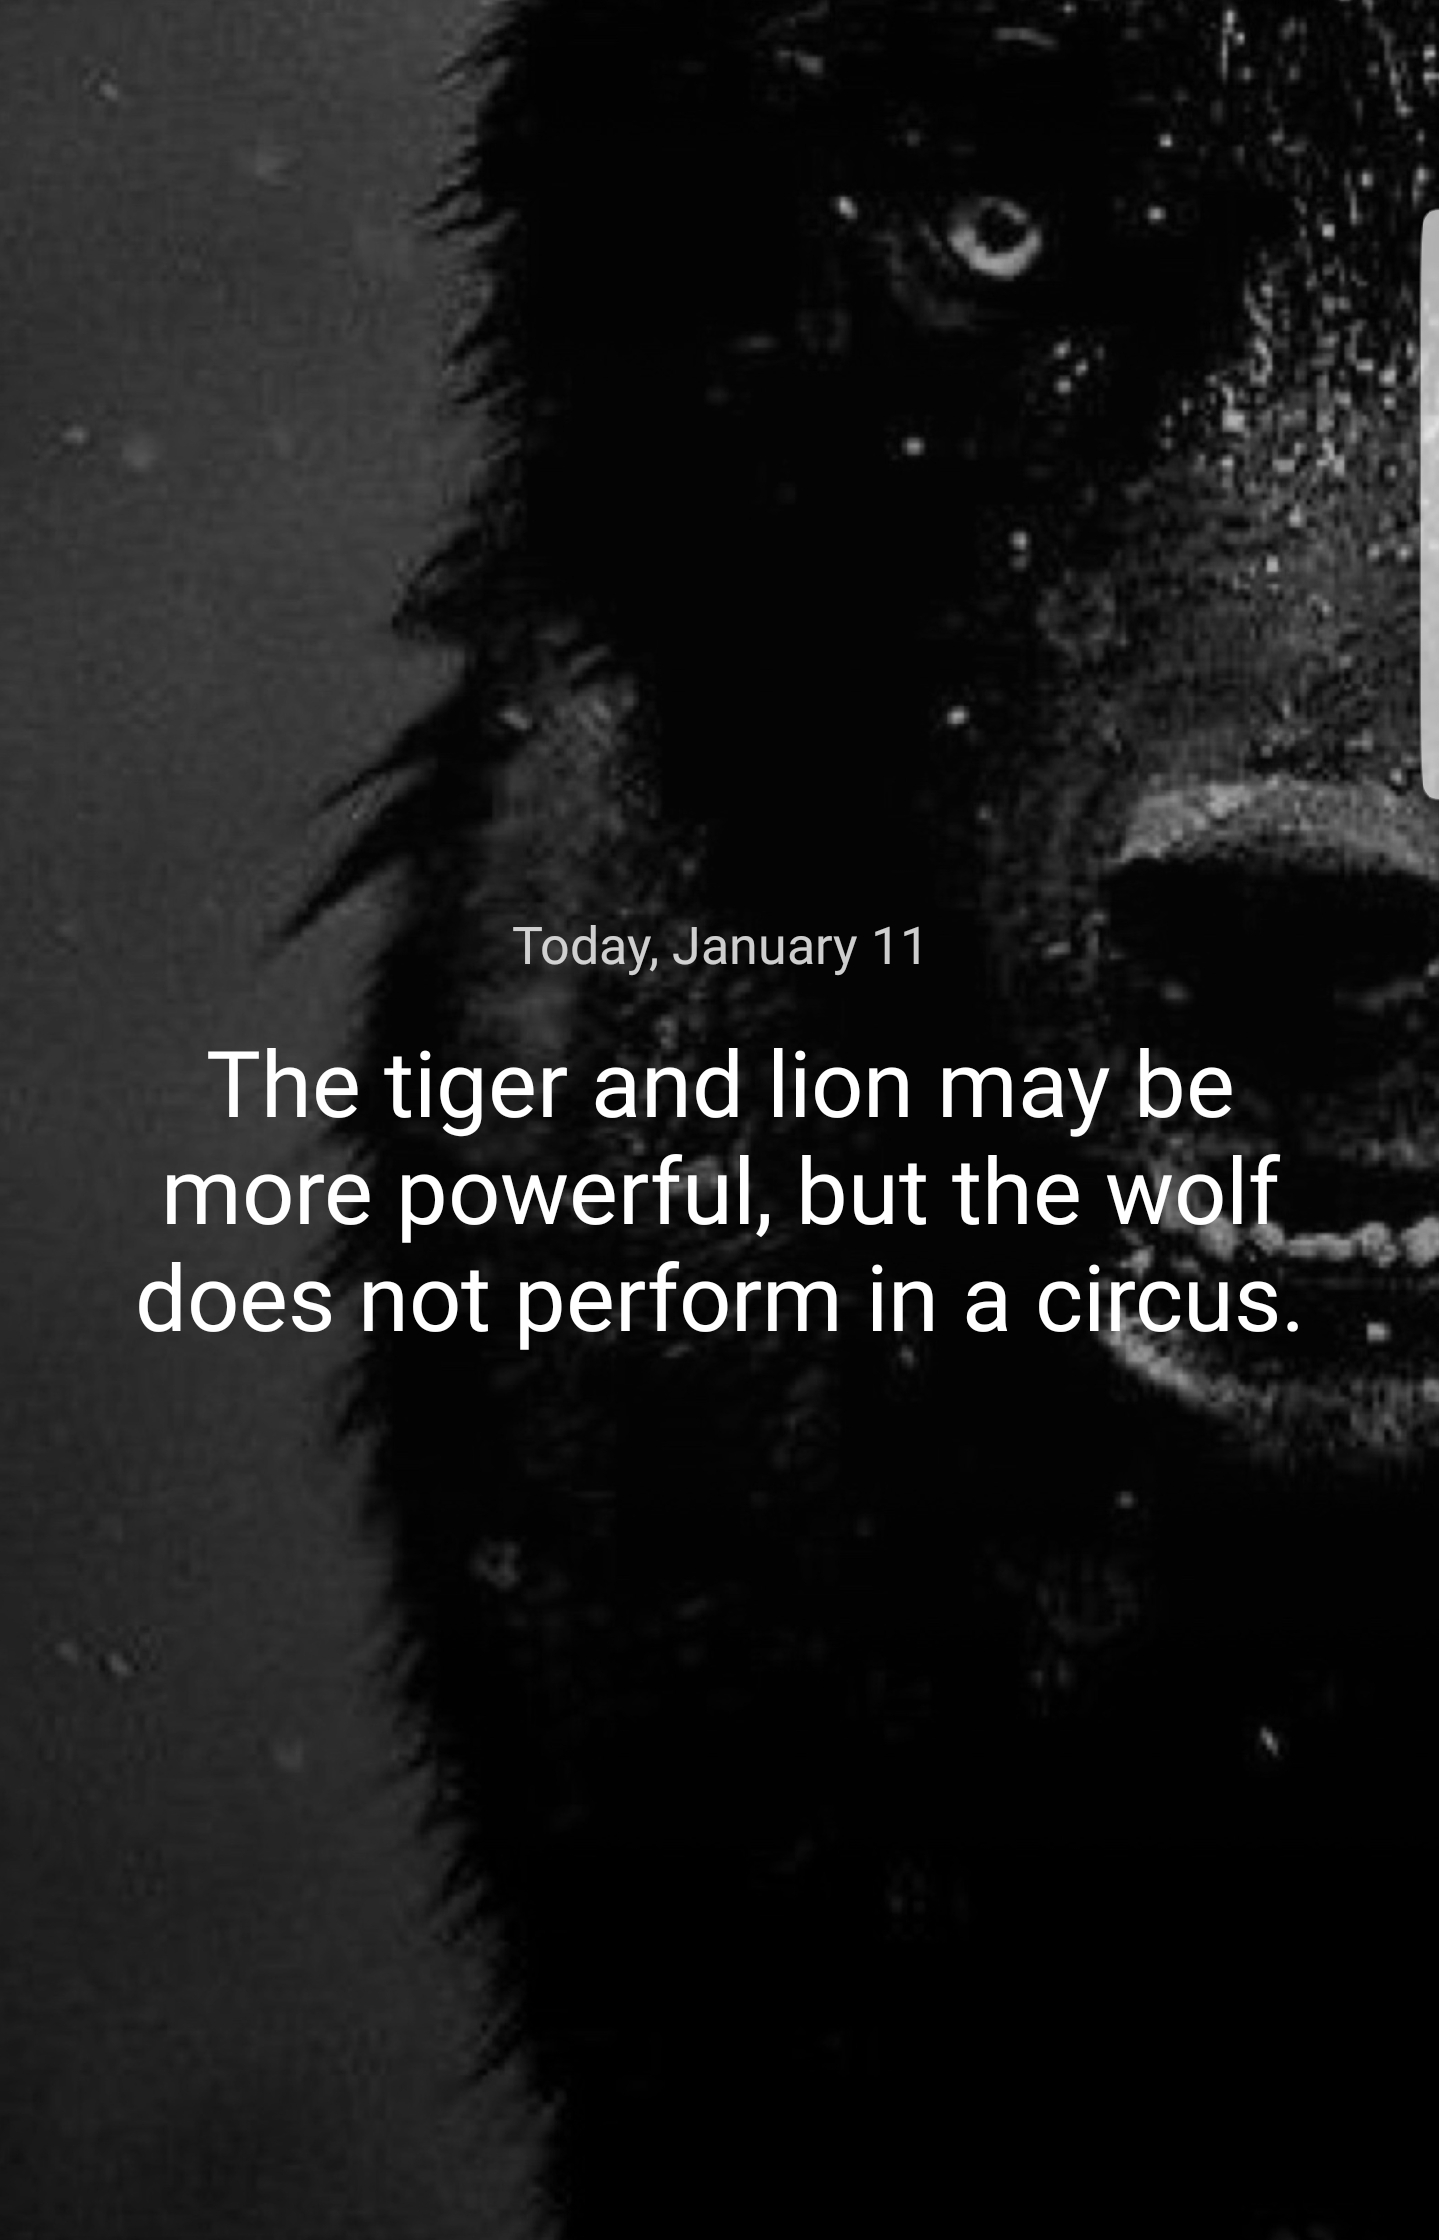 """Today, January 11 The tiger and lion may be more powerful, but the welt-"""" ' does not perform in a cirlcus. ' https://inspirational.ly"""